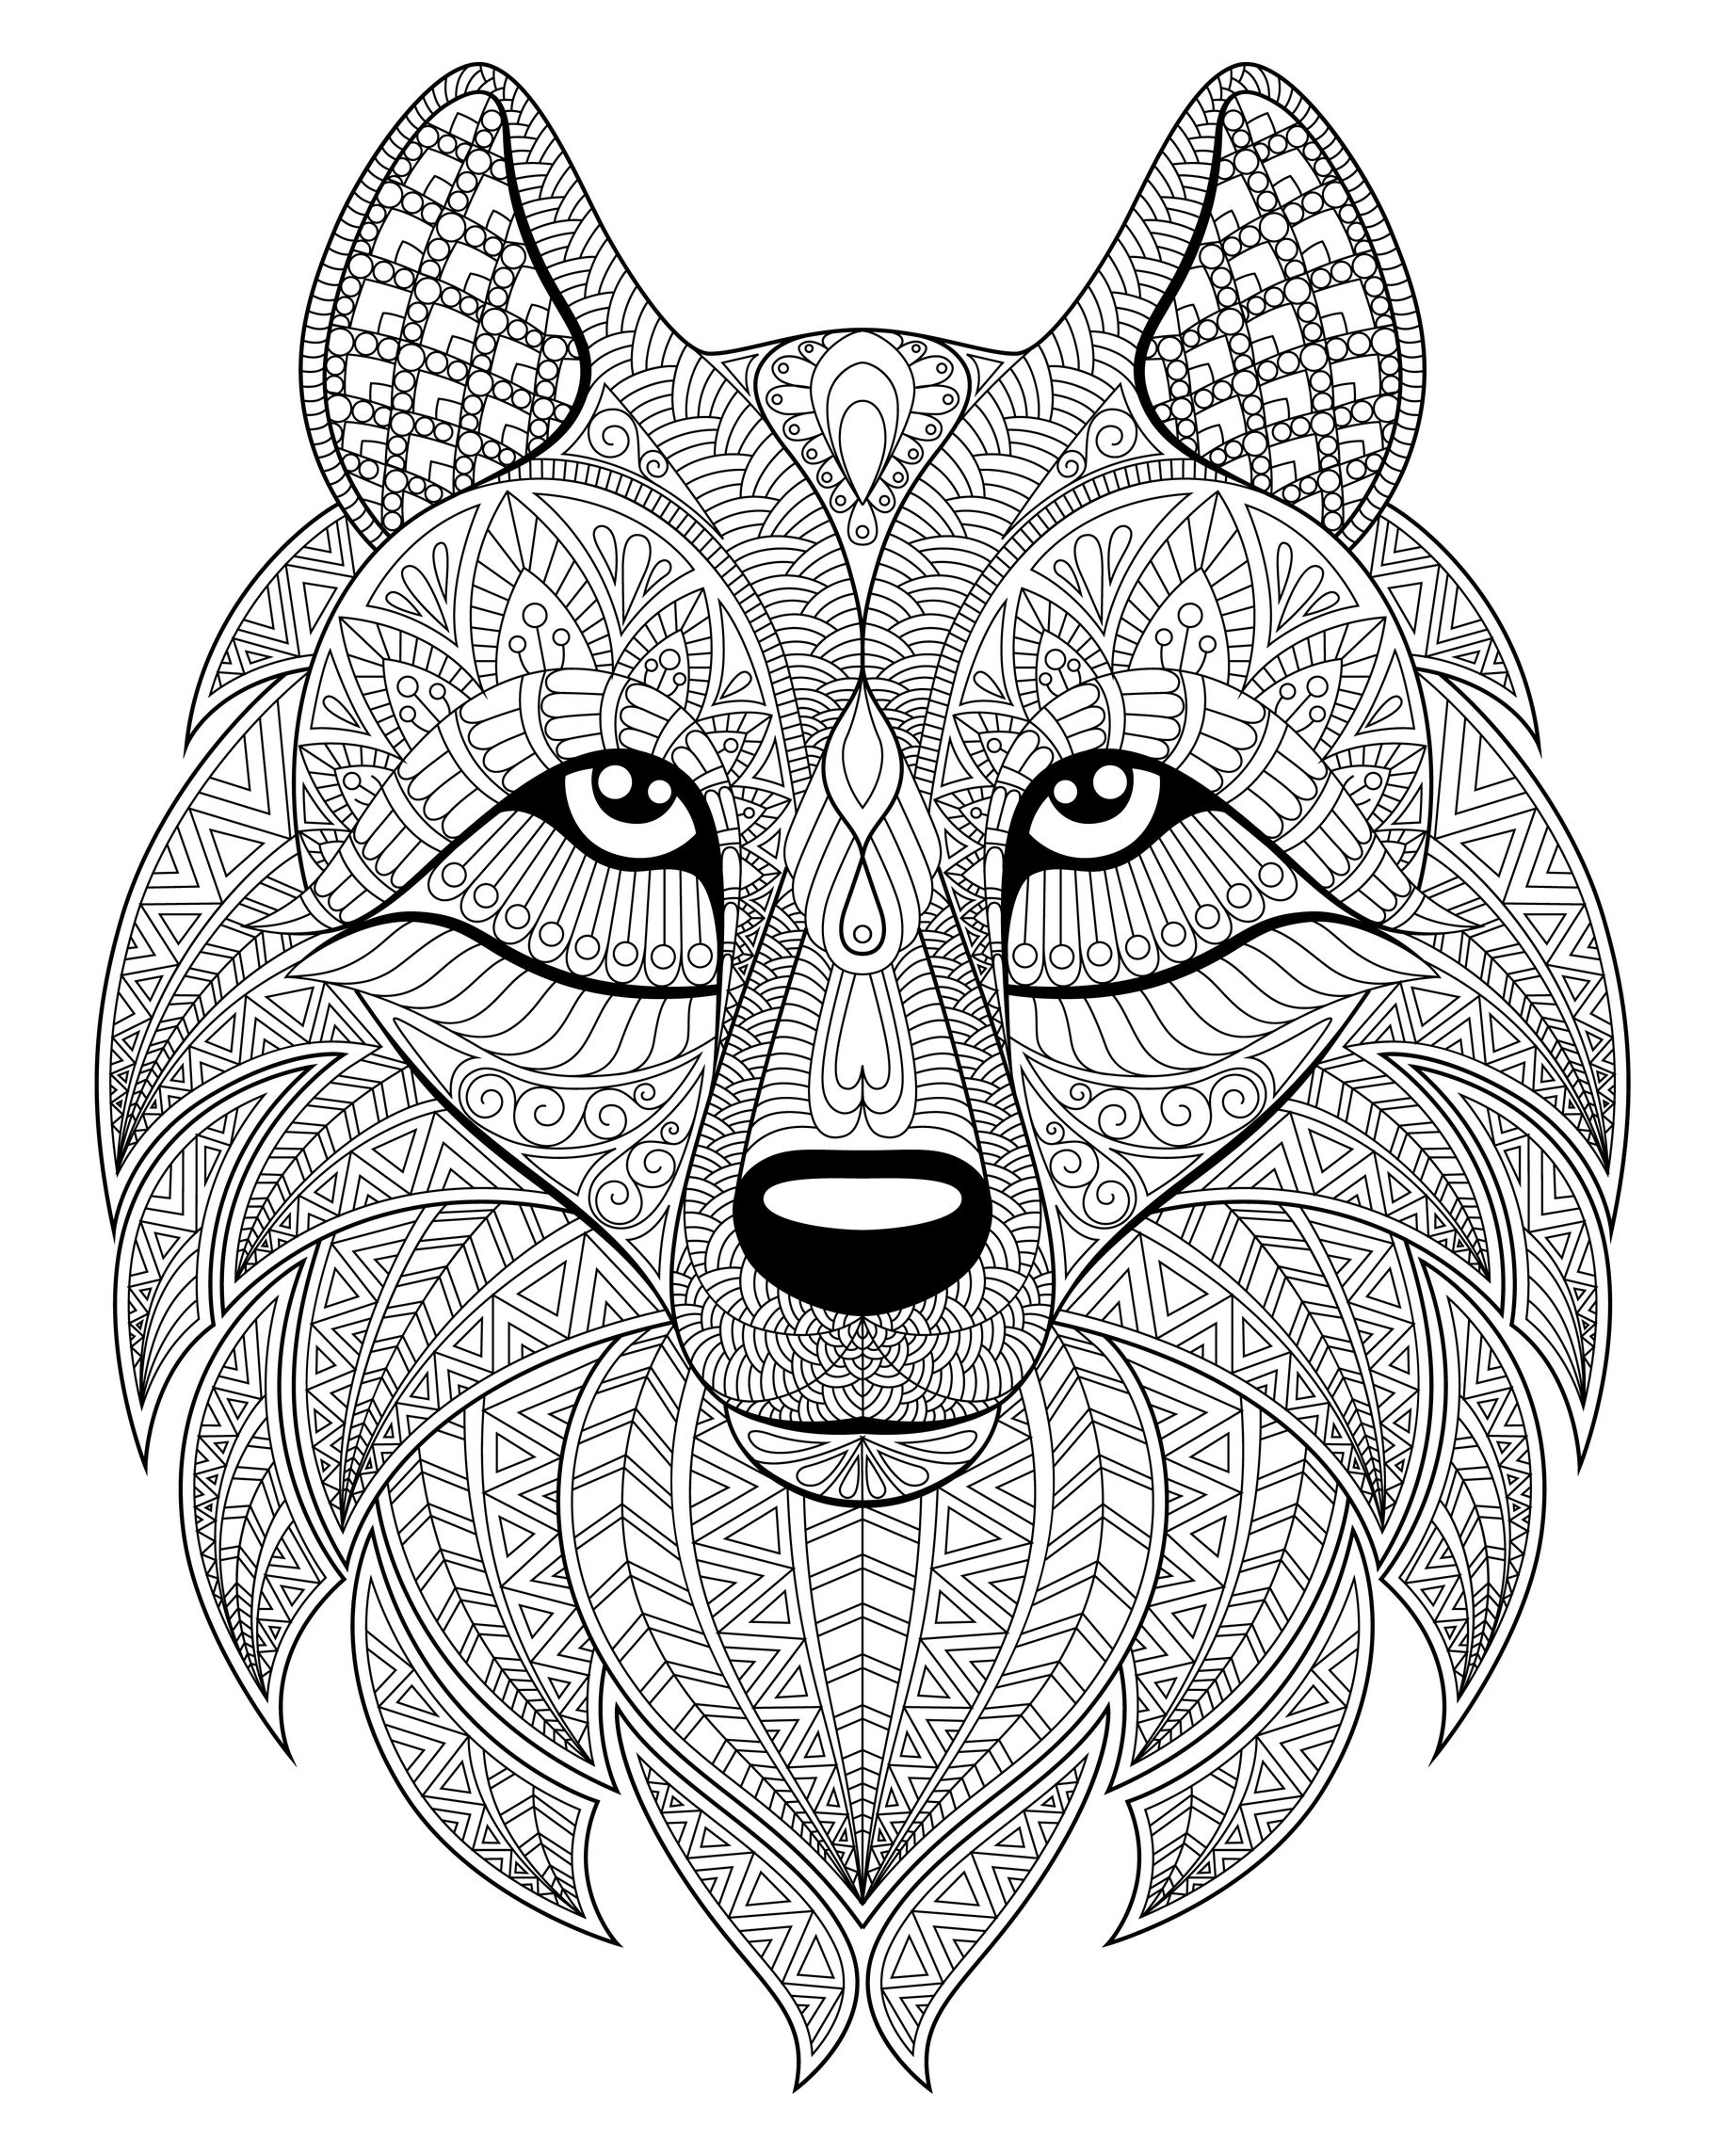 wolf coloring pages for adults wolf coloring pages for adults best coloring pages for kids pages coloring for adults wolf